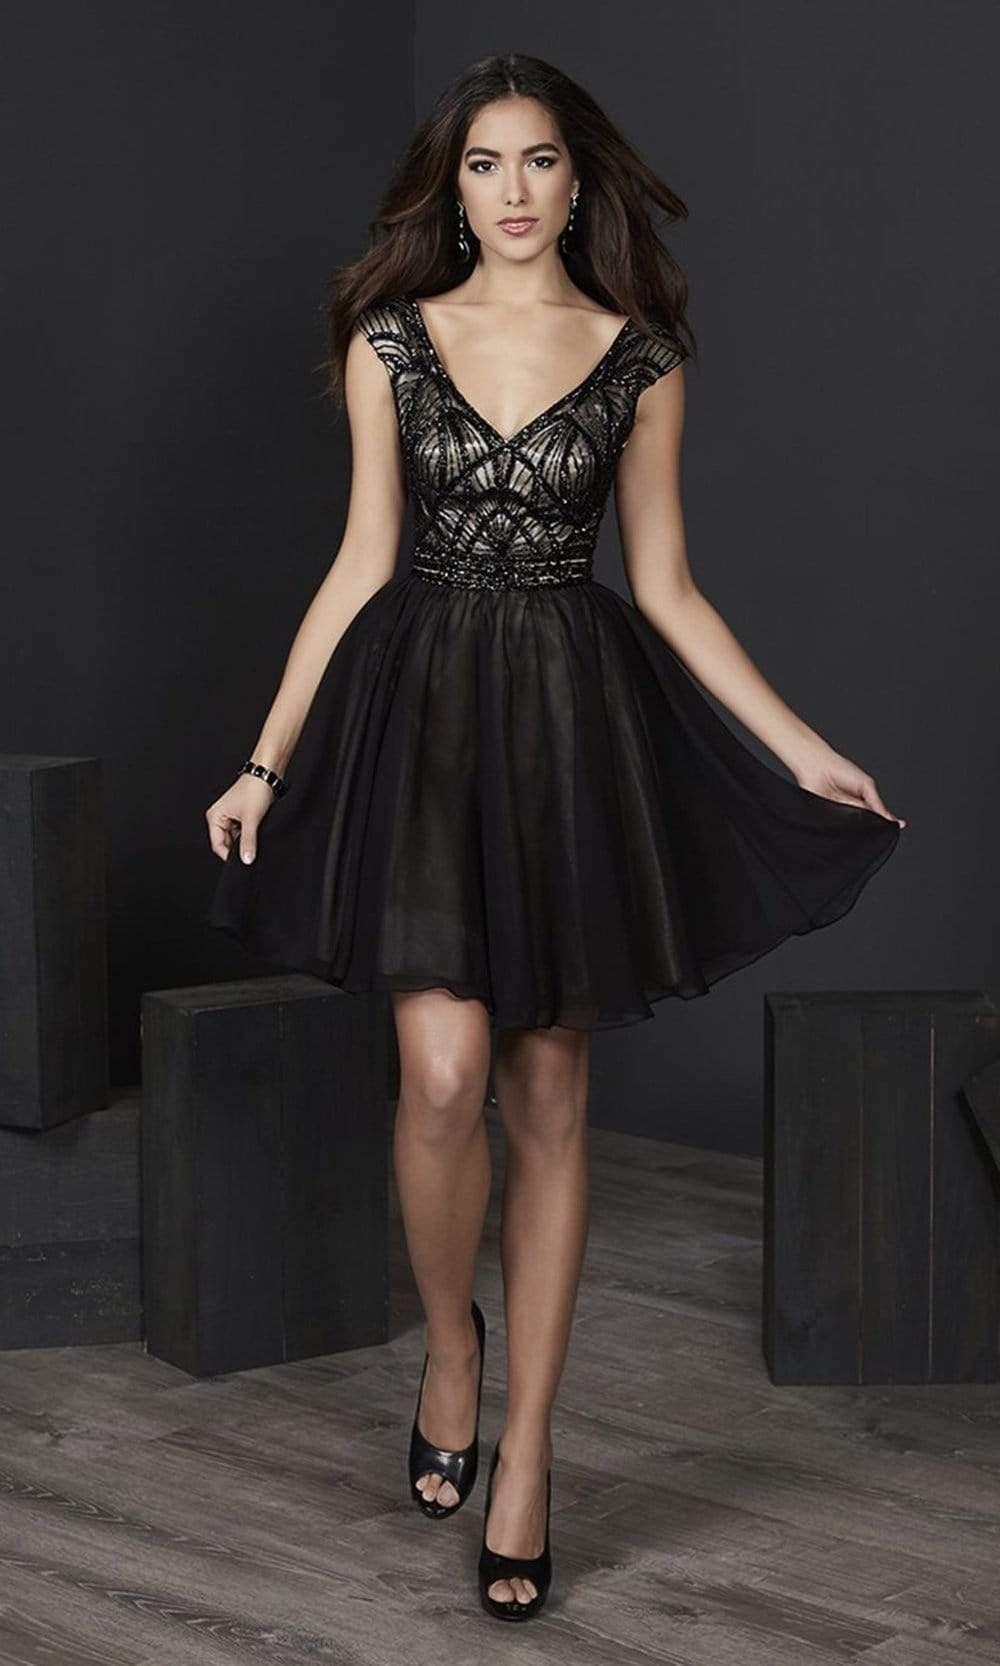 Tiffany Homecoming - 27240 Cap Sleeve Beaded Bodice Chiffon Dress from Tiffany Homecoming